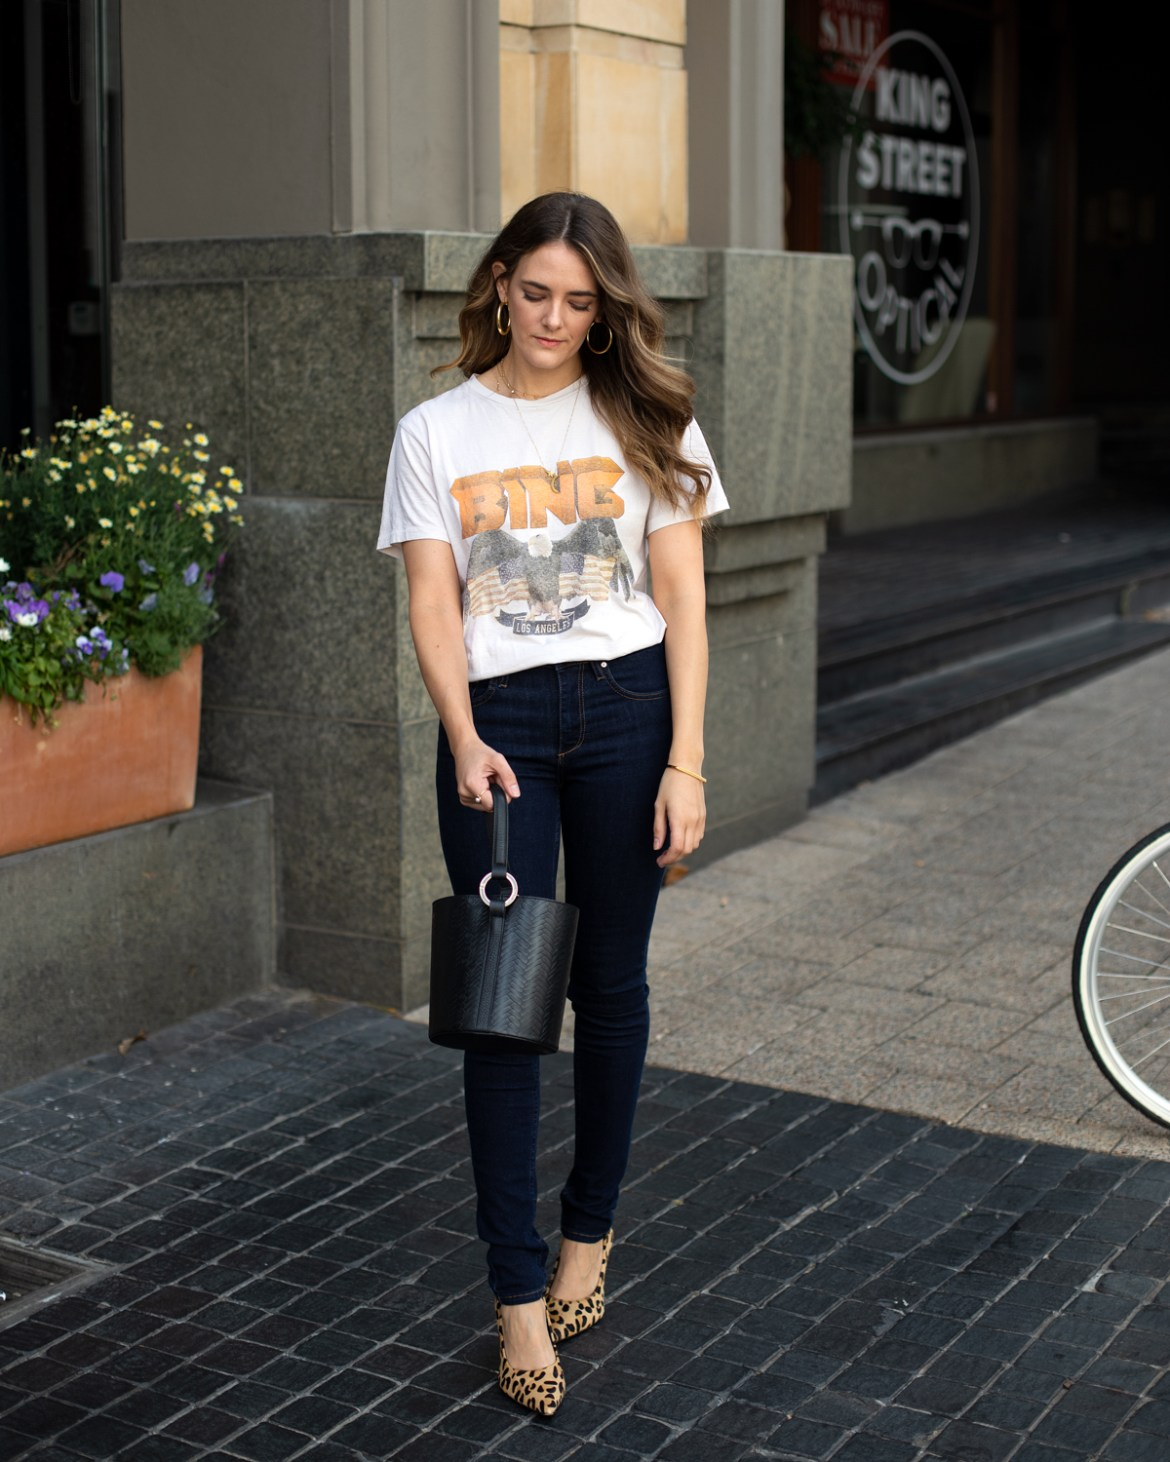 Anine Bing vintage tee outfit with Reiko skinny jeans and leopard print heels worn by fashion blogger Jenelle Witty from Inspiring Wit from a blog post talking about big little goals for 2019